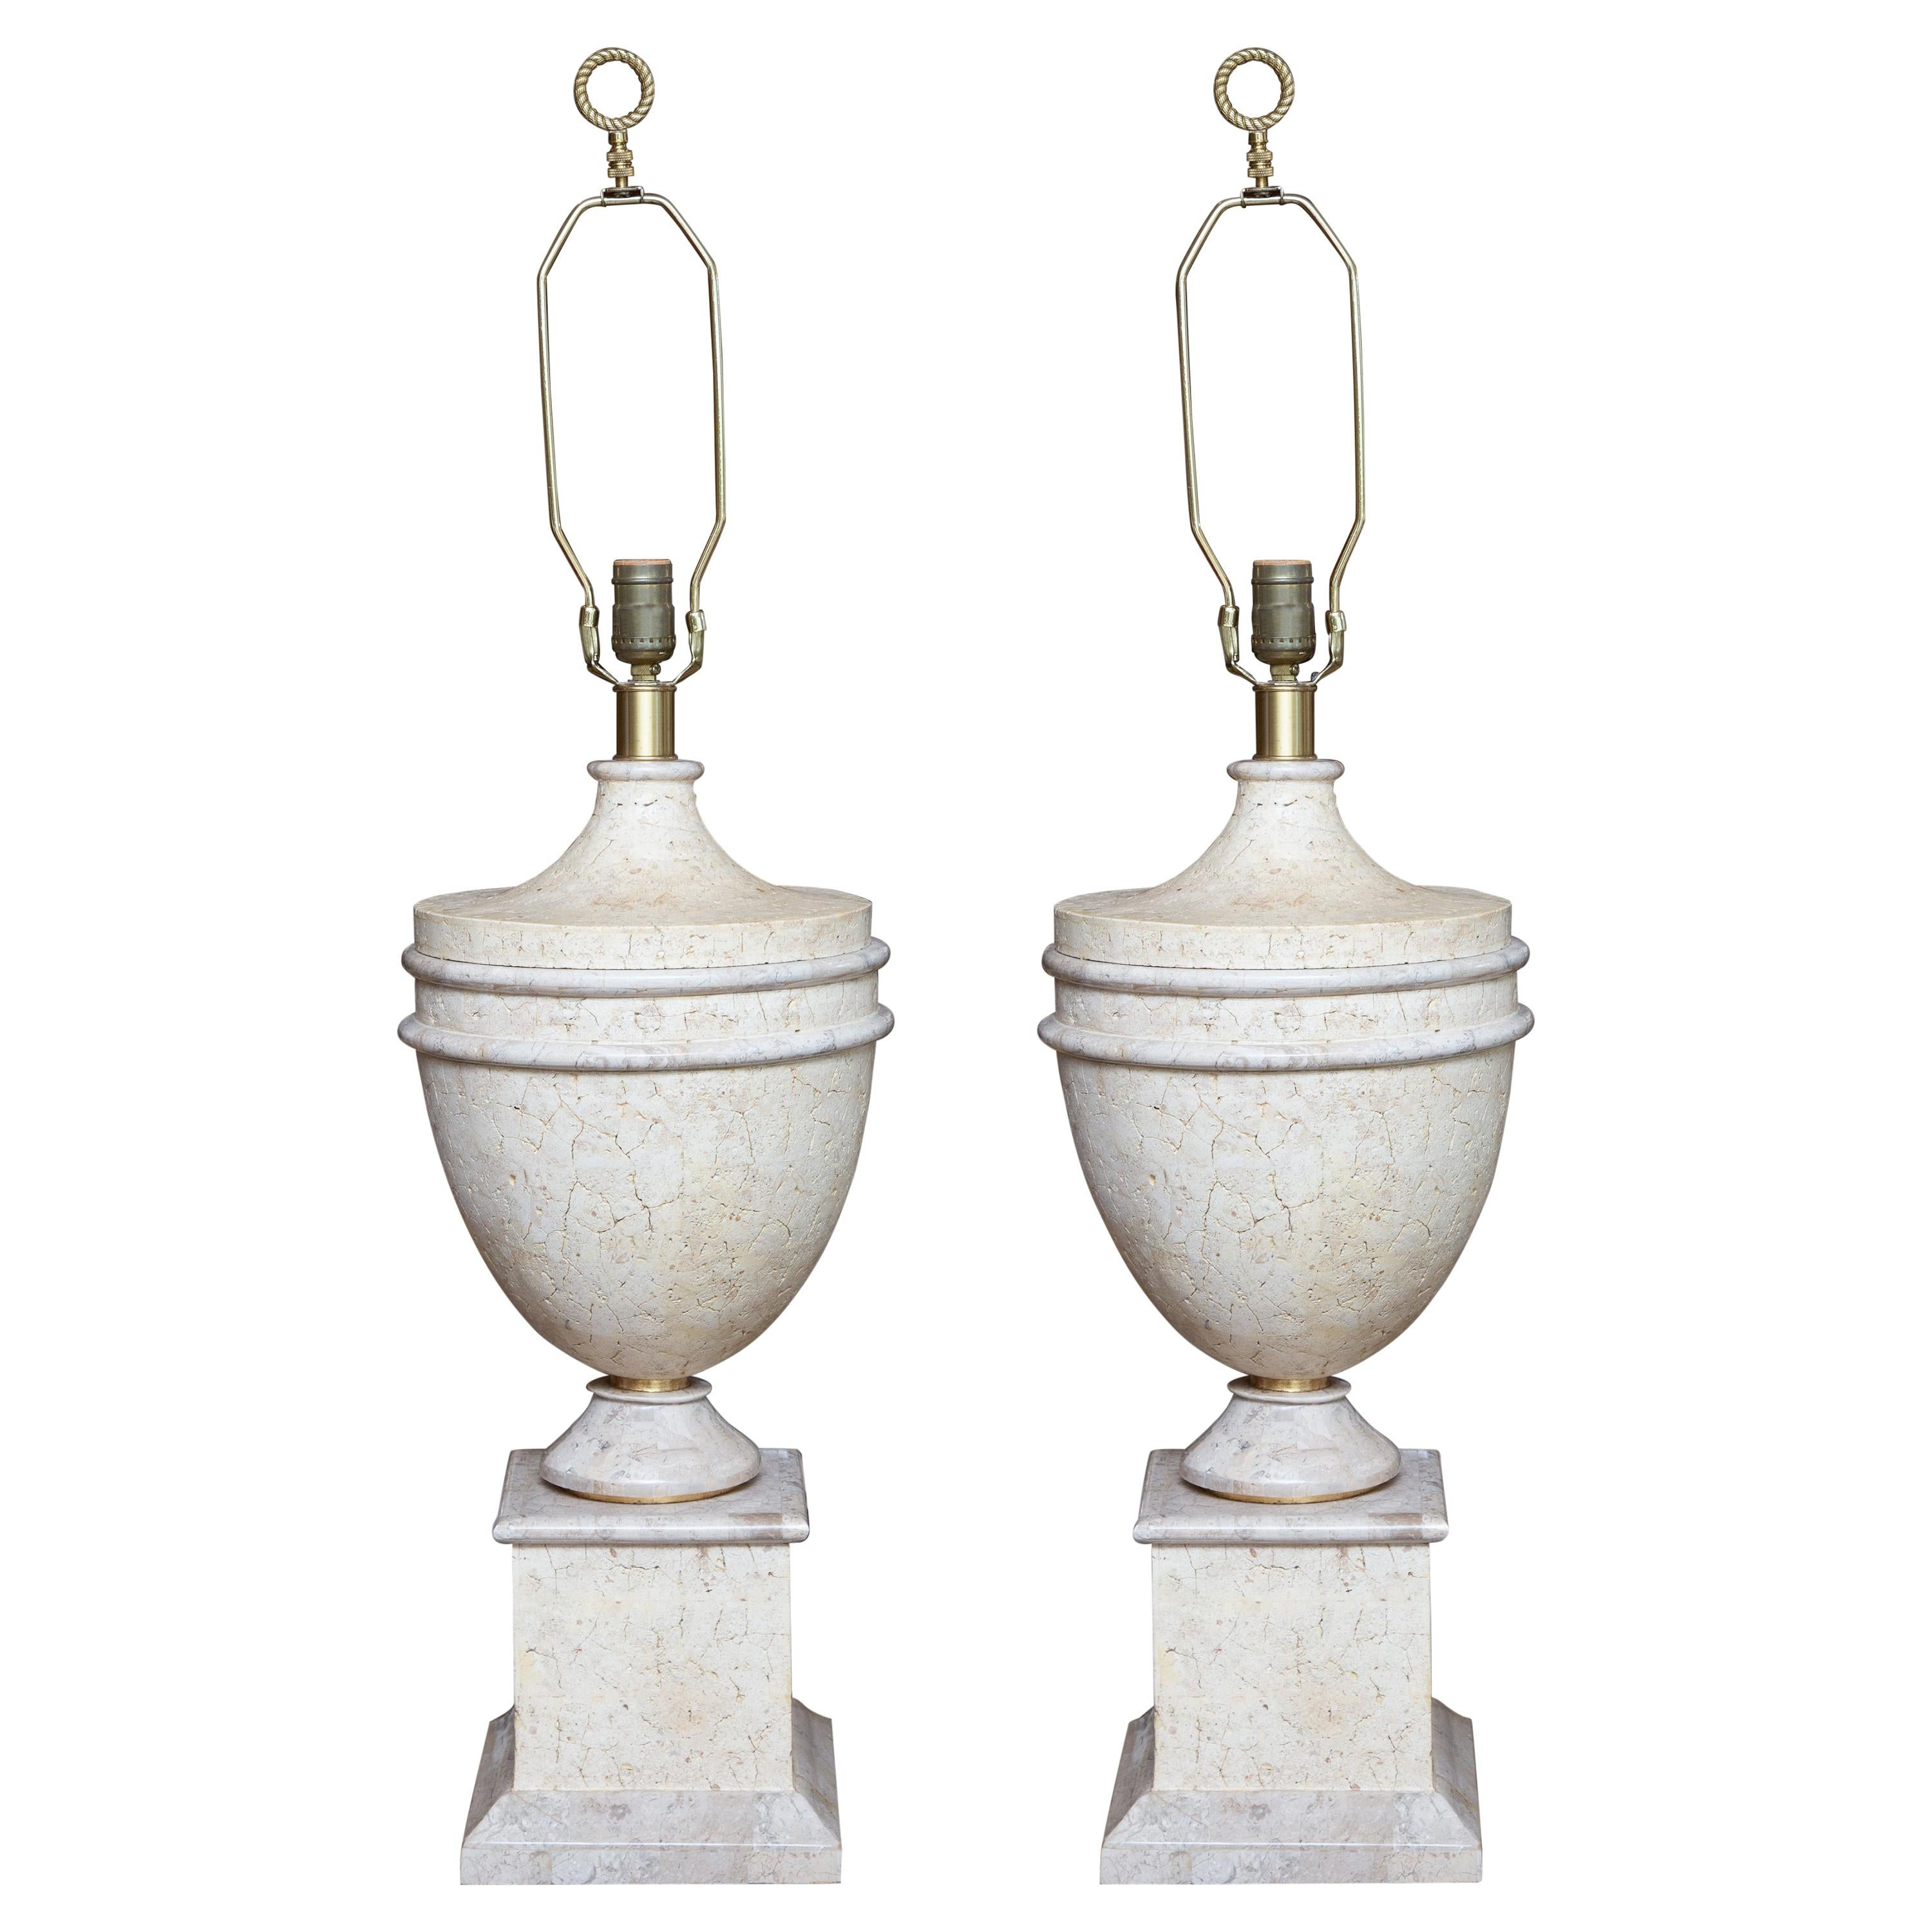 Pair of Faux Stone Urn Form Table Lamps with Custom Shades